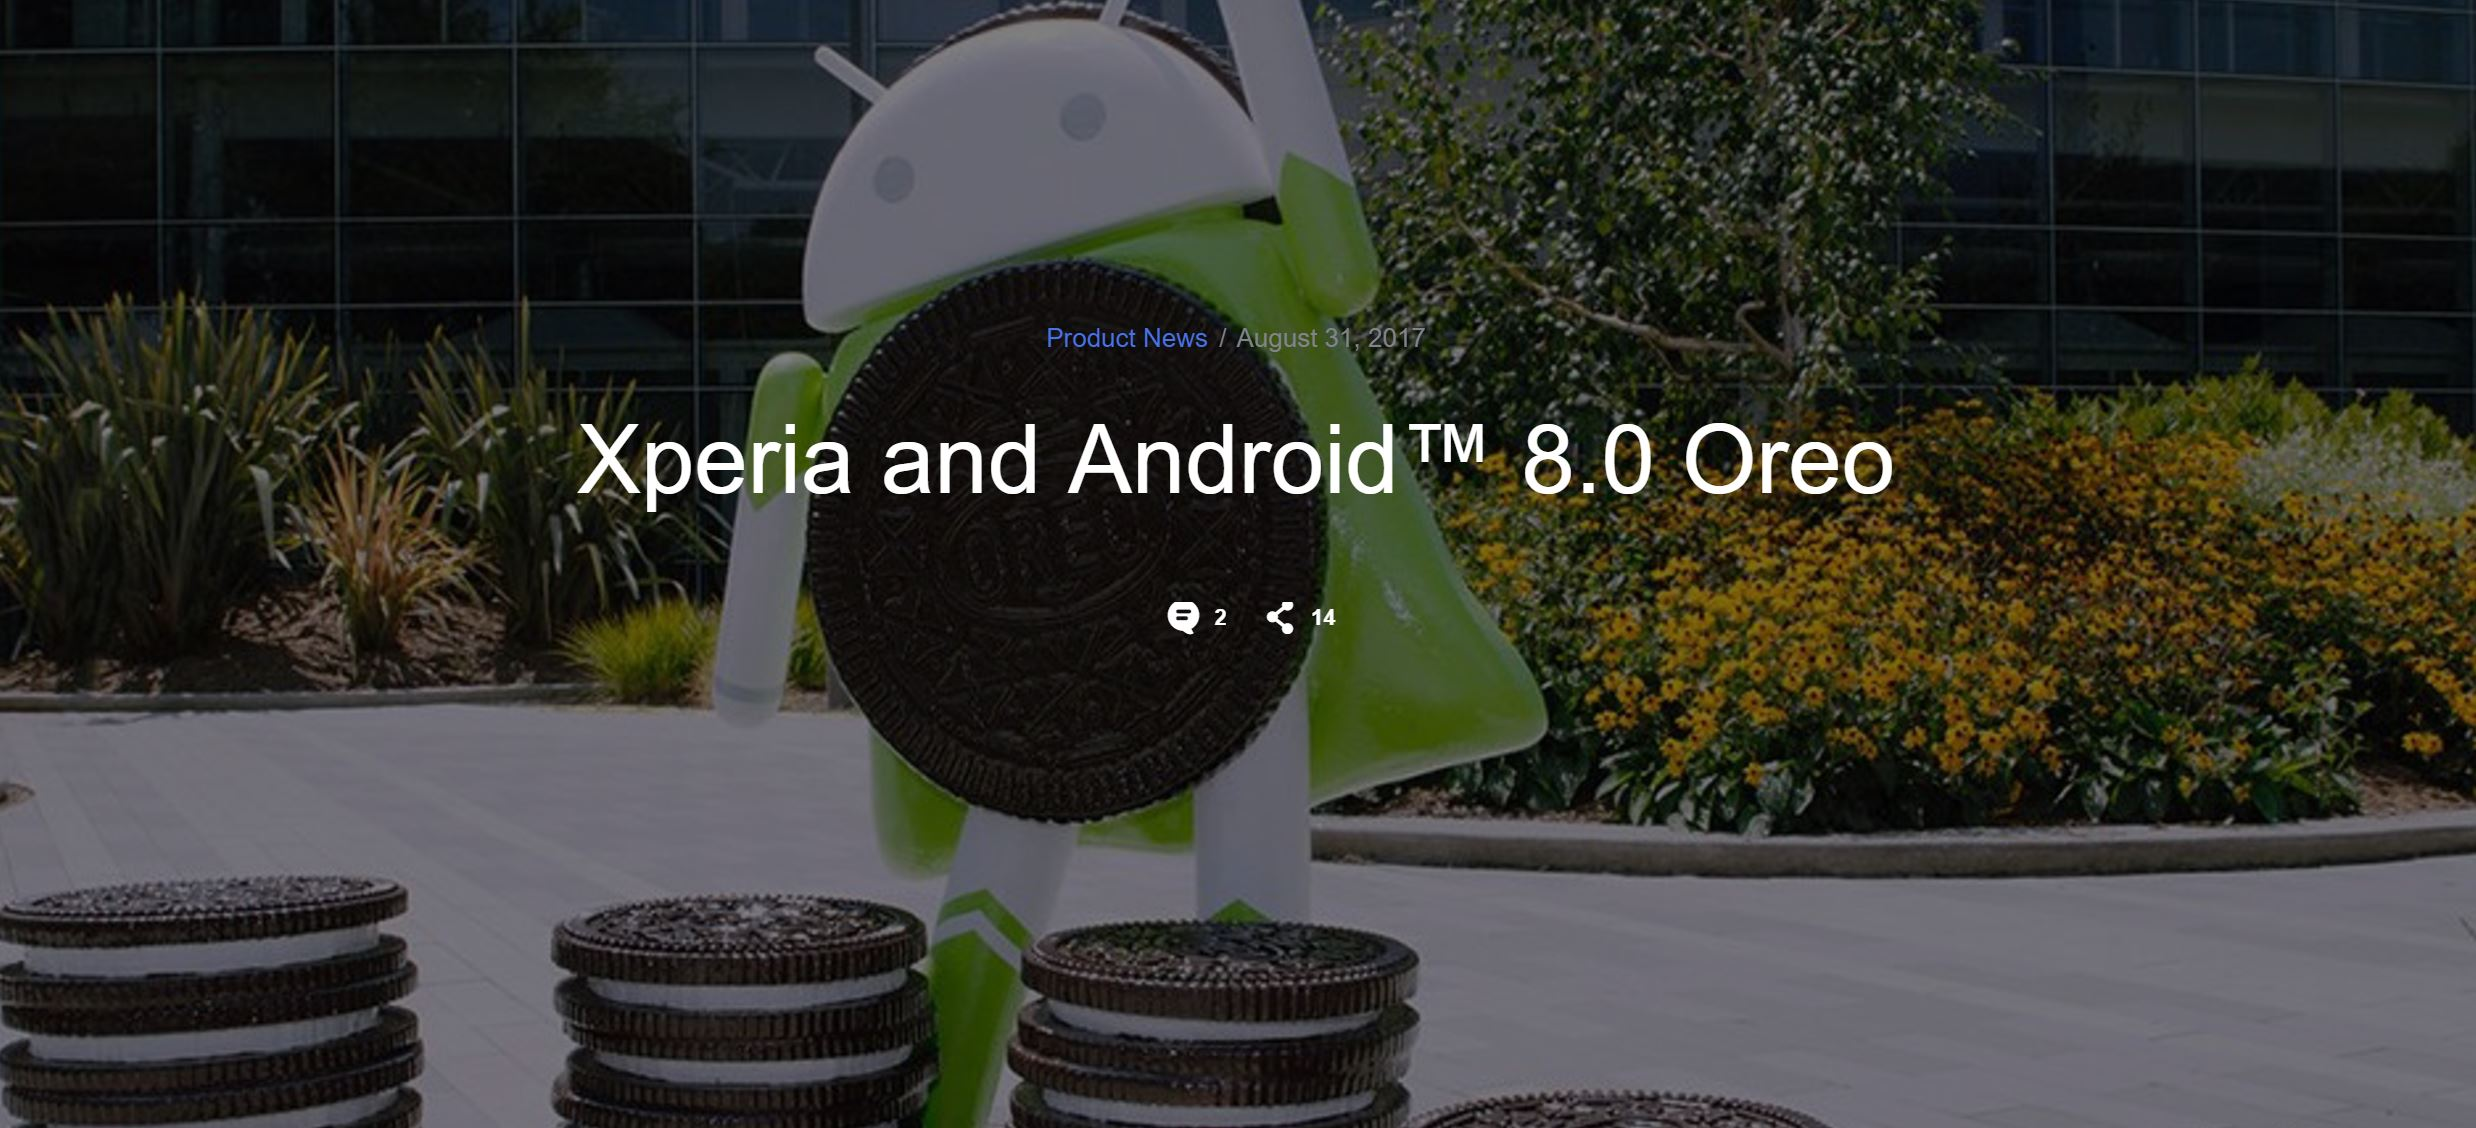 SONY 公布 Android 8.0 Oreo 手機升級名單